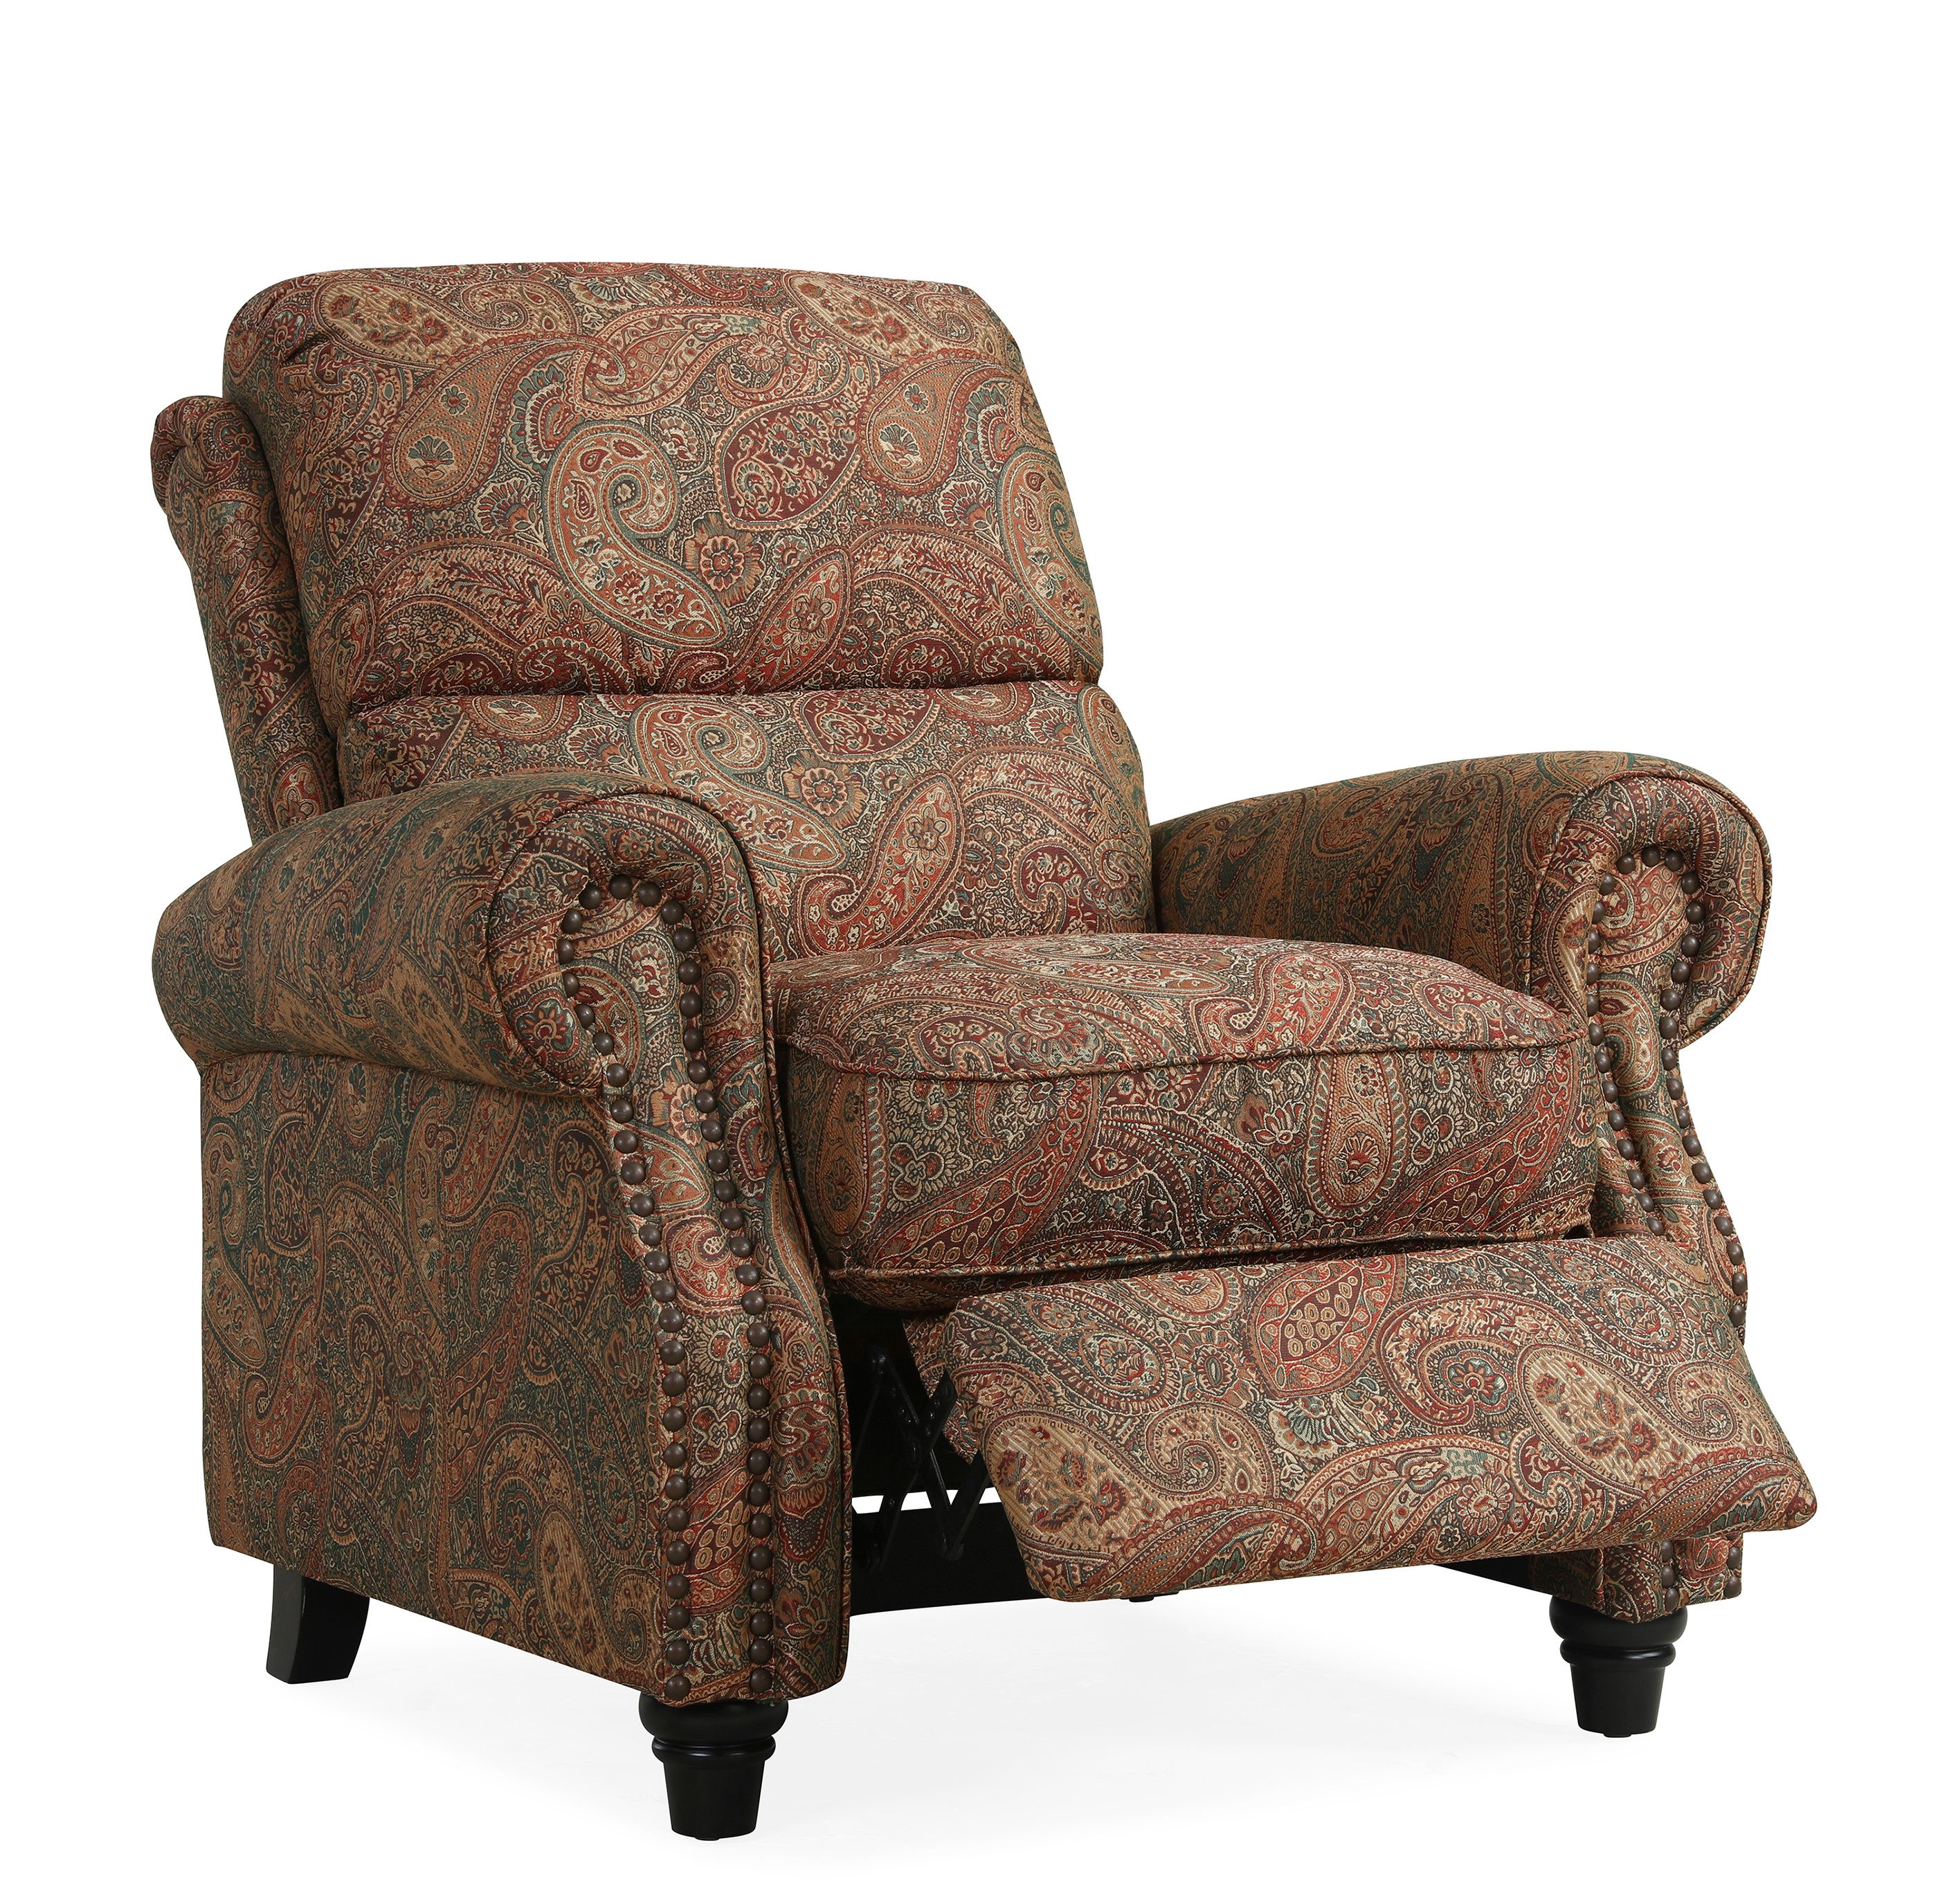 Awesome Homesvale Cari Push Back Recliner Chair In Paisley In 2019 Machost Co Dining Chair Design Ideas Machostcouk